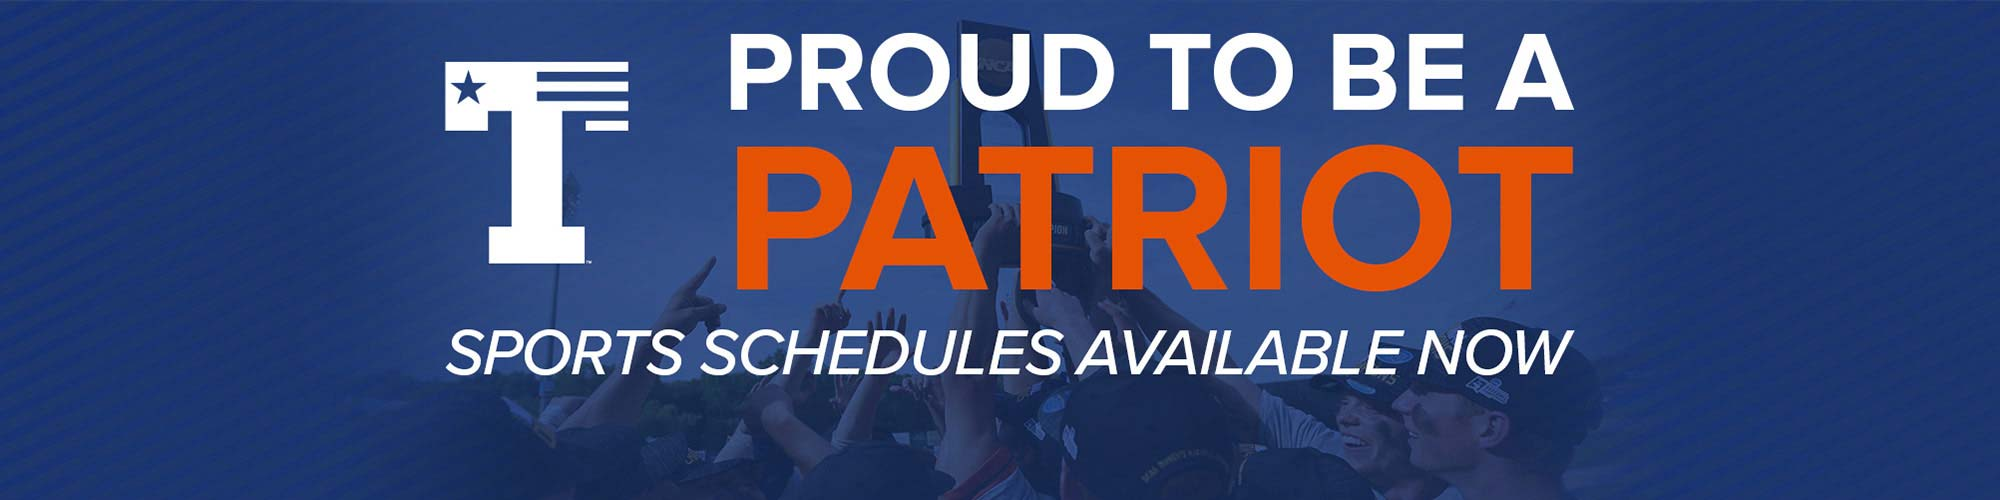 PROUD TO BE A PATRIOT | Sports Schedules Available Now